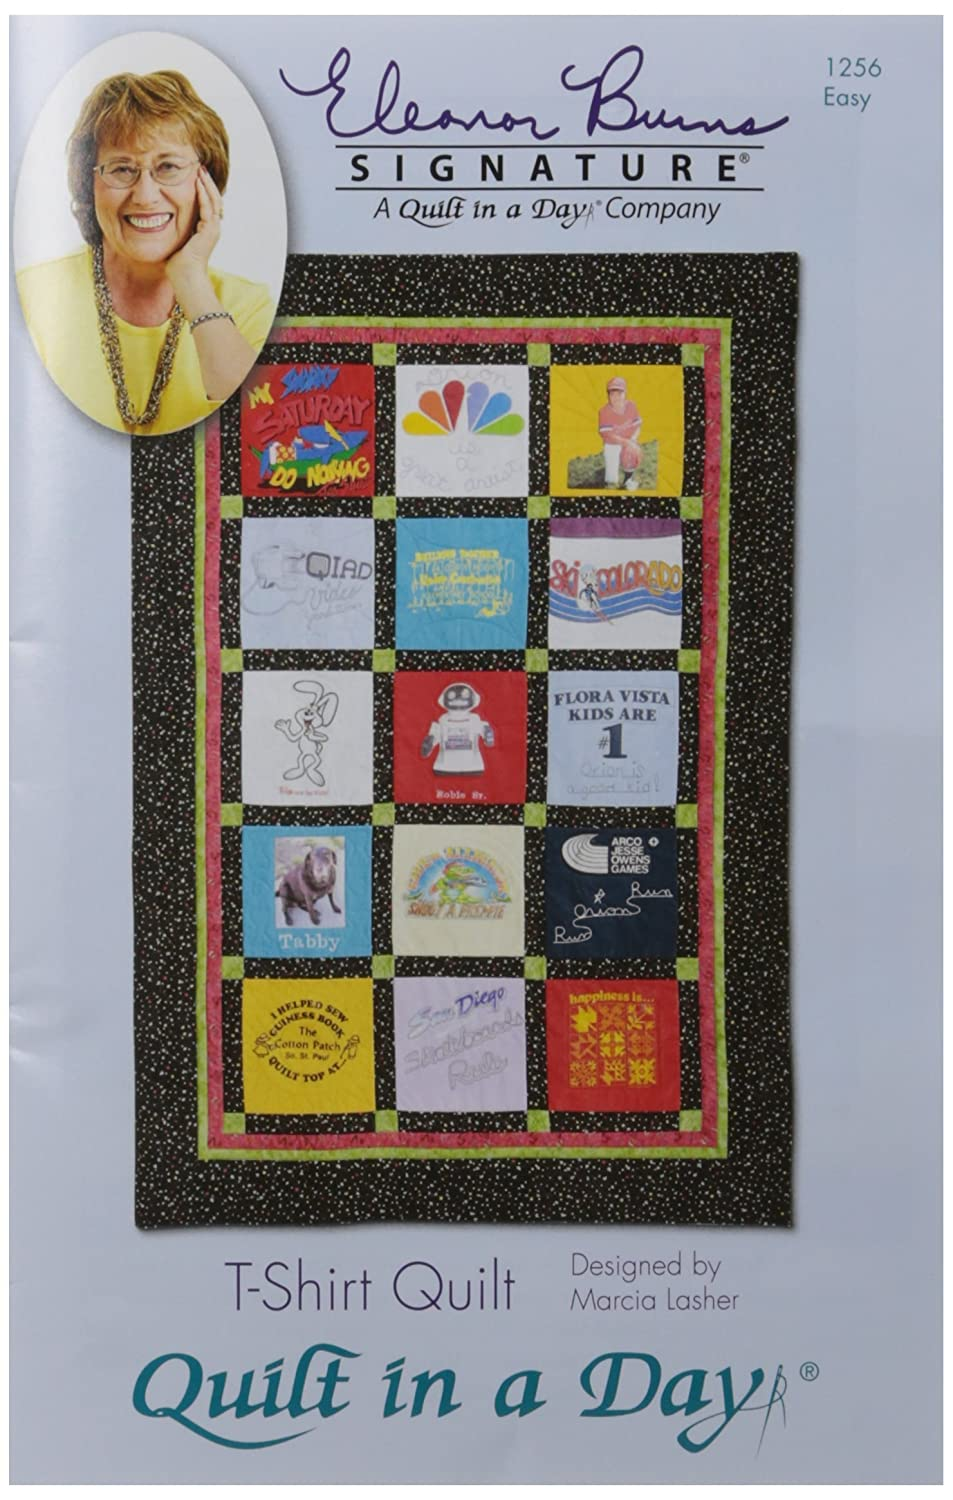 Quilt in a Day T-Shirt Quilt Pattern by Eleanor Burns EB-1256